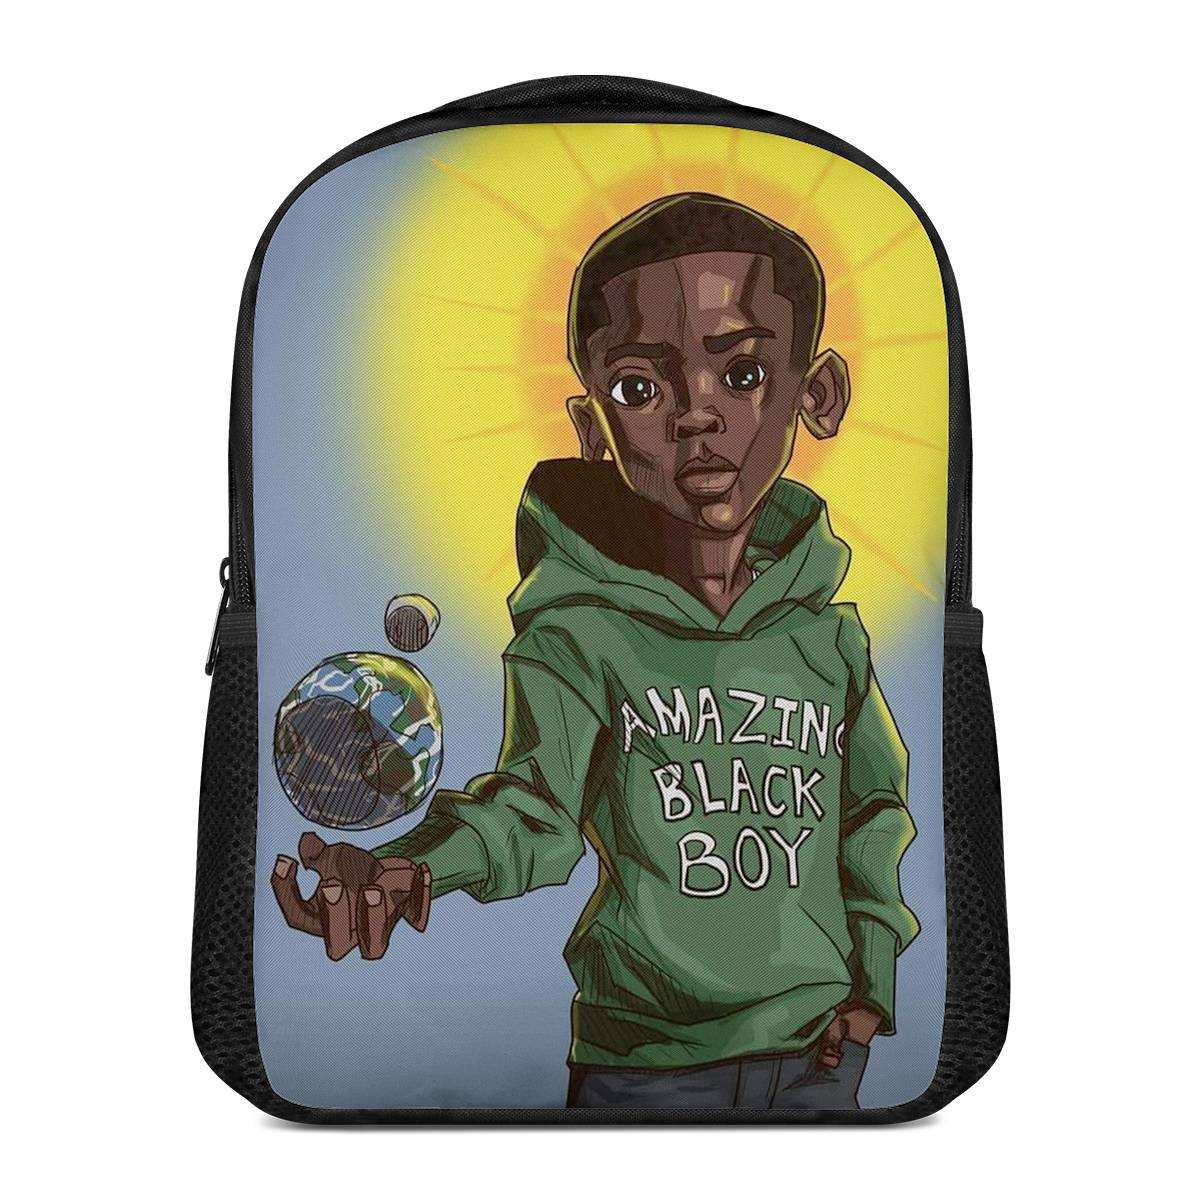 Bookbag Fits 12 Inch Book Bag Sschool Black Boy Print Backpack Afro Brown Kindergarten Kids Back Pack Custom School Bag for Boys